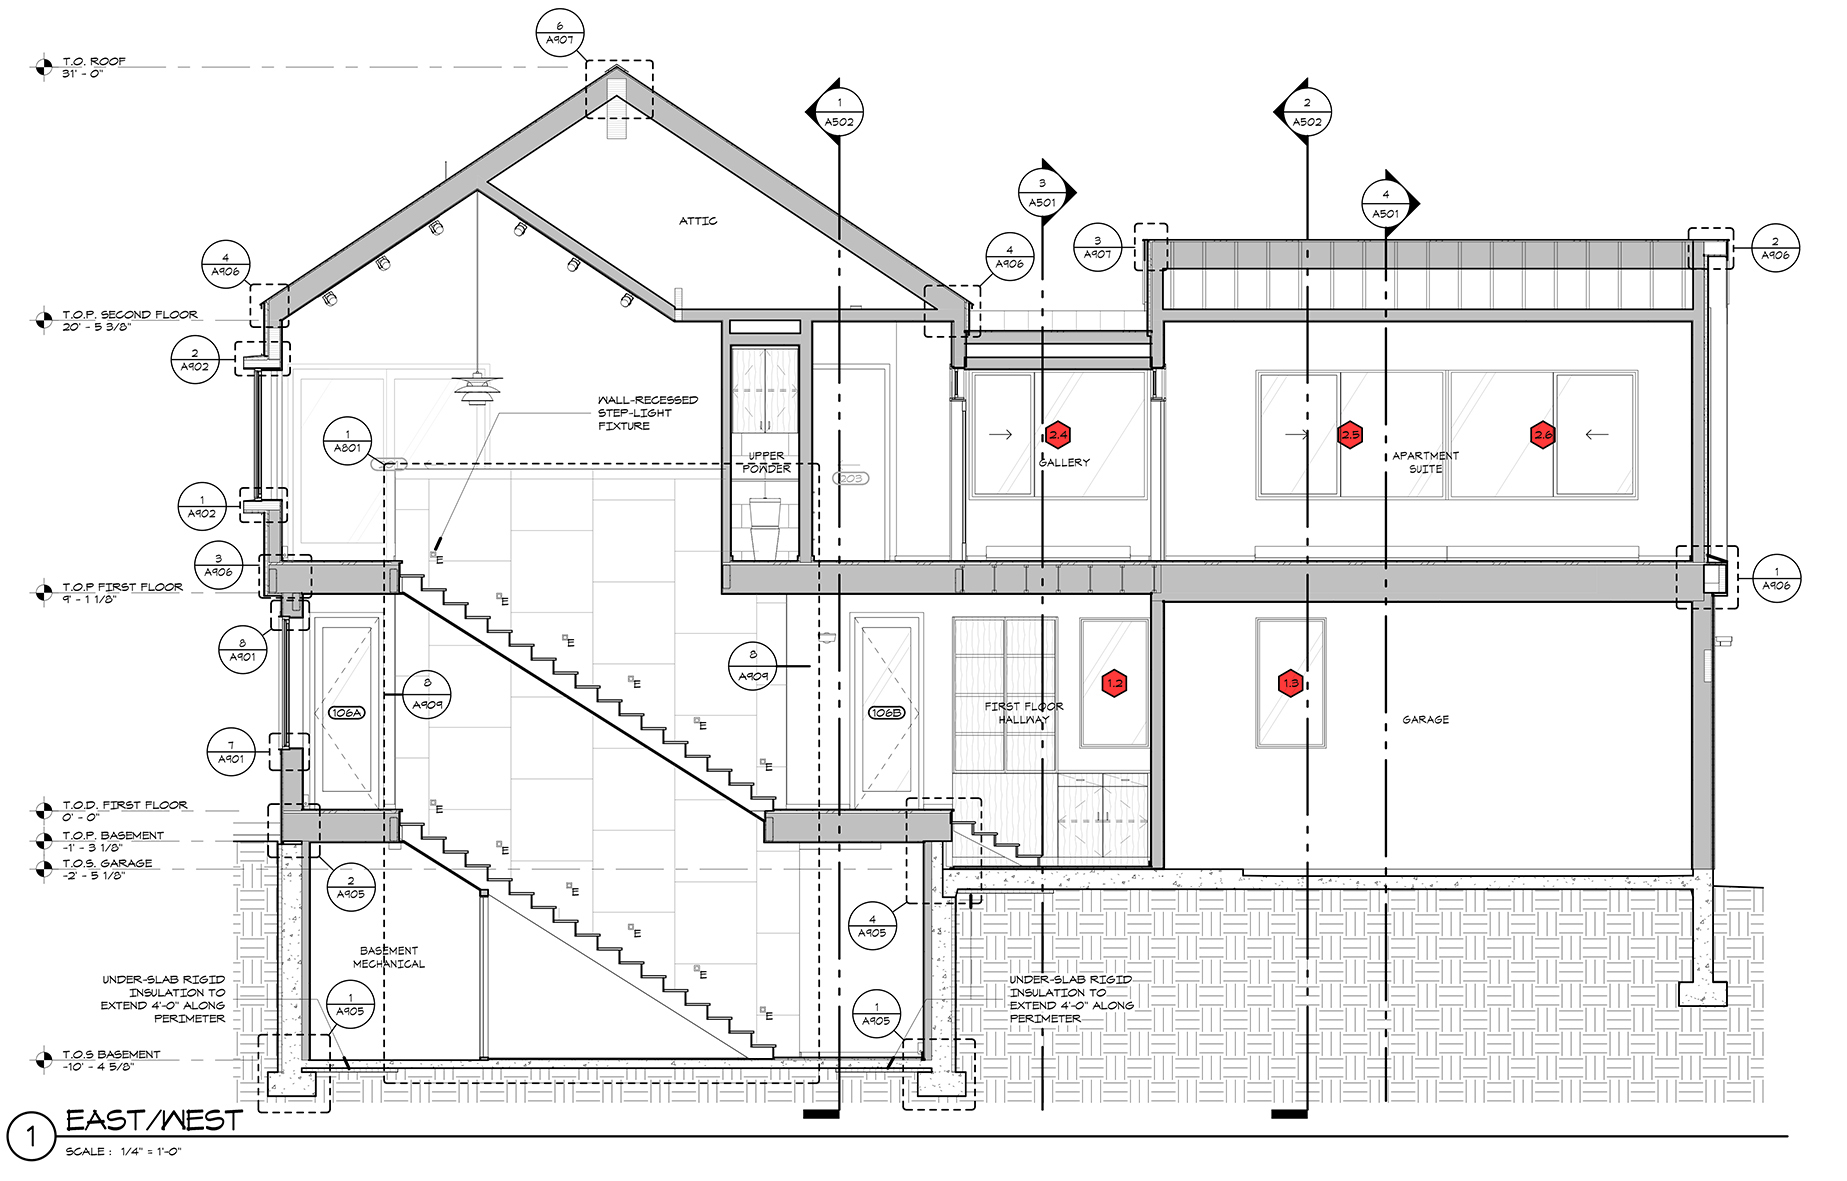 architecture section diagram goldwing trailer wiring architectural graphics 101 window schedules life of an architect tags in by malone maxwell borson architects